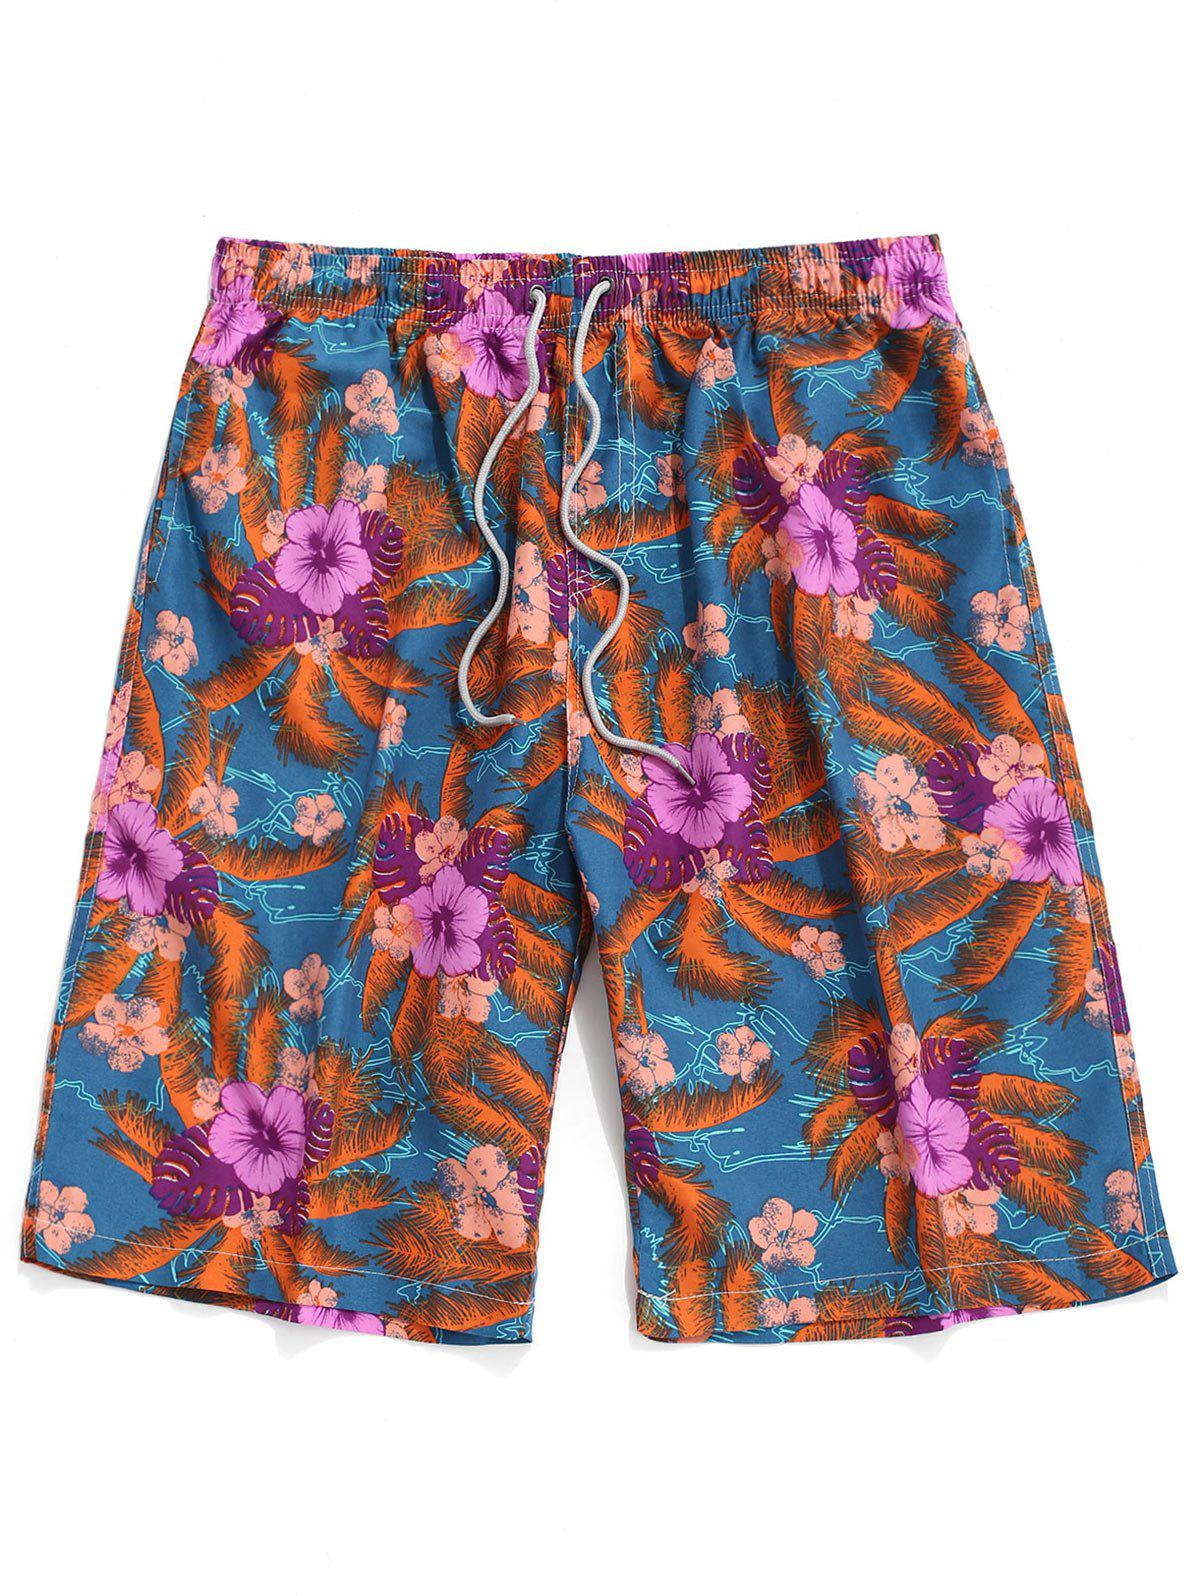 Unique Floral Pattern Casual Board Shorts